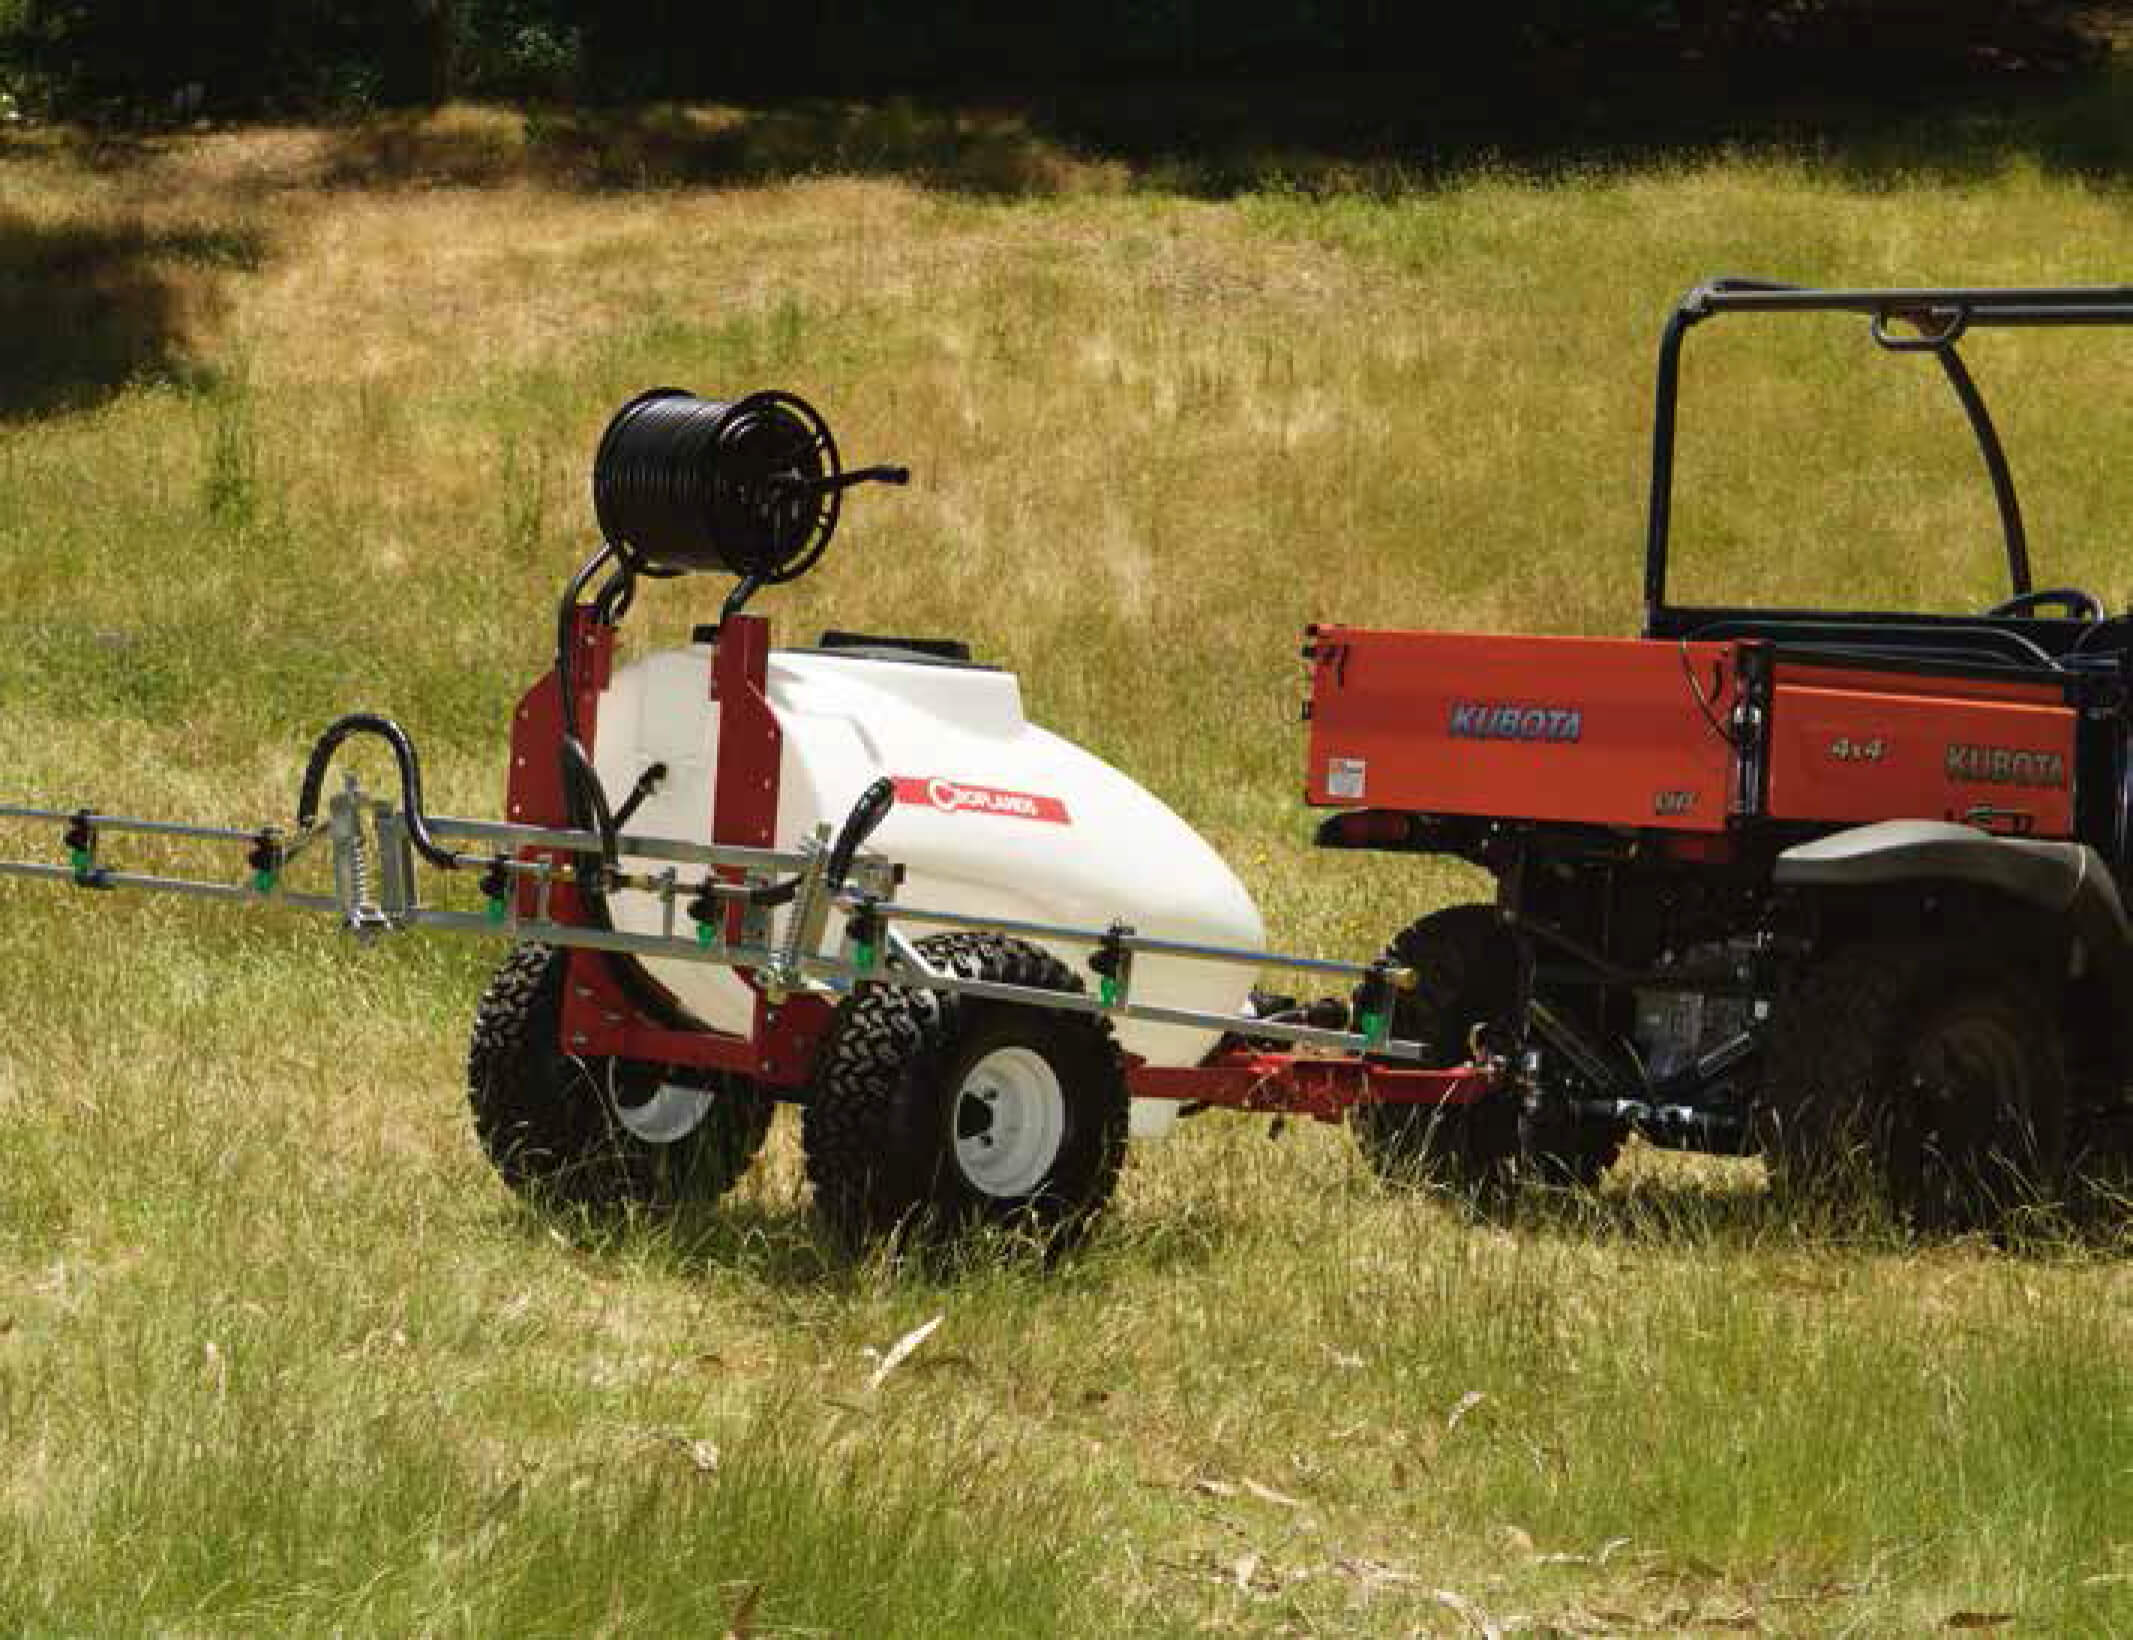 Weed Sprayer 200 Litre With Boom 12 Volt. Other Farming & Agriculture